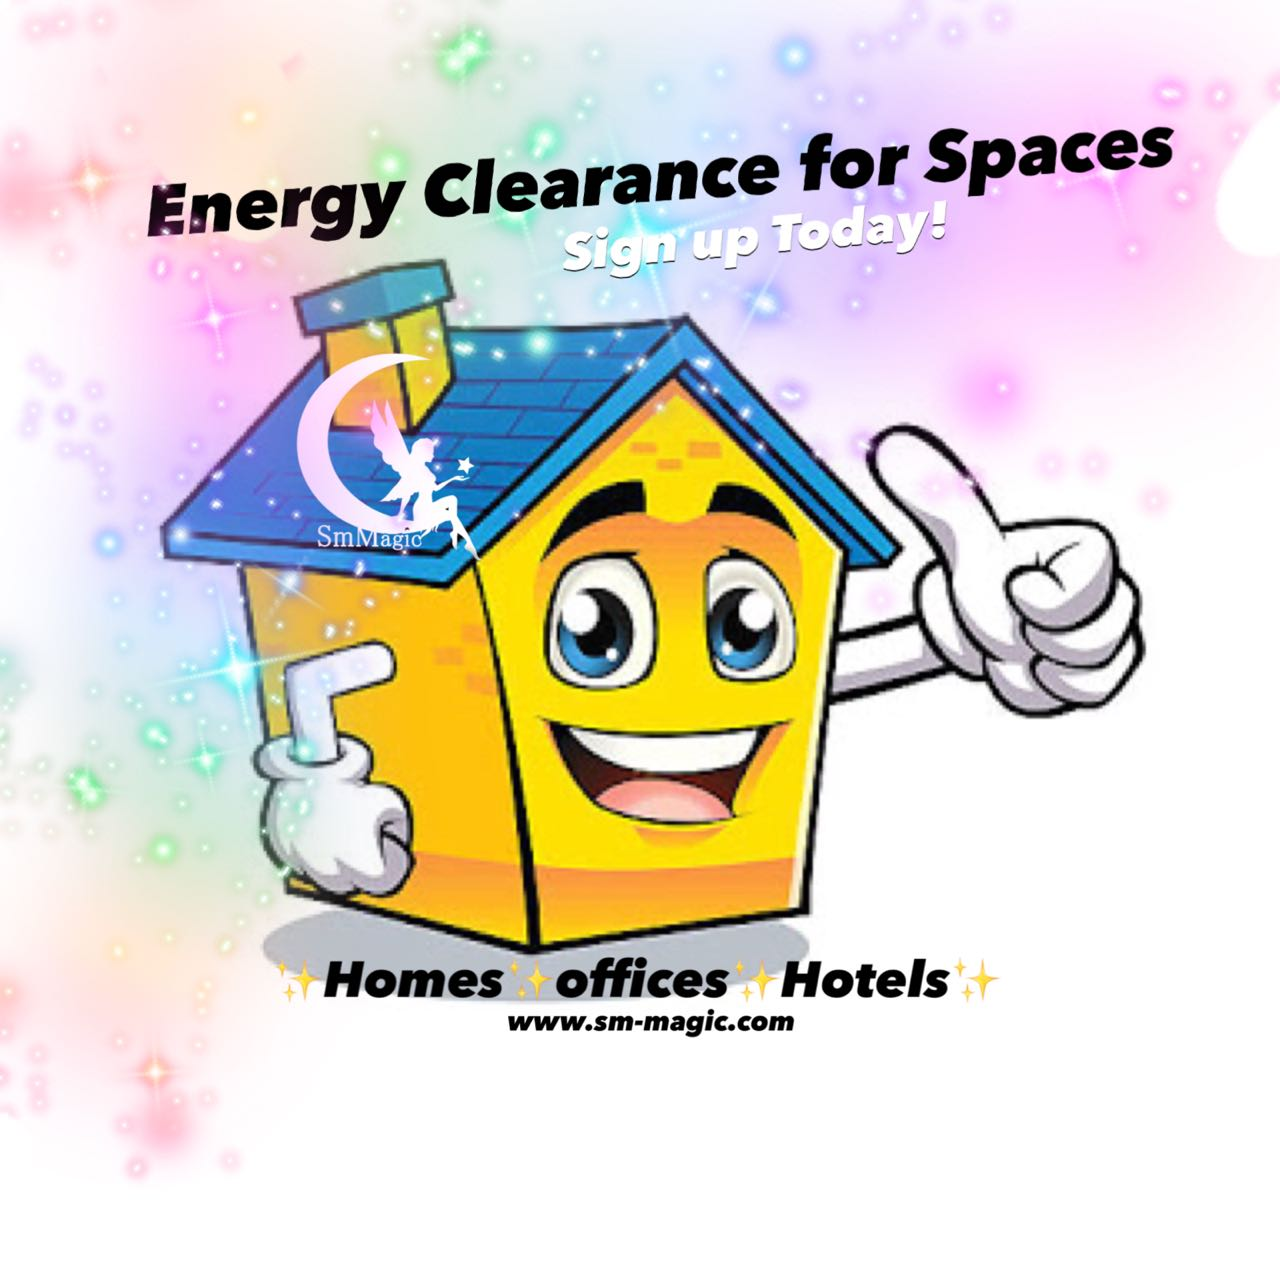 ENERGY CLEARANCE FOR SPACES Energy exchange - Rs. 1000/- Click the image to sign up.